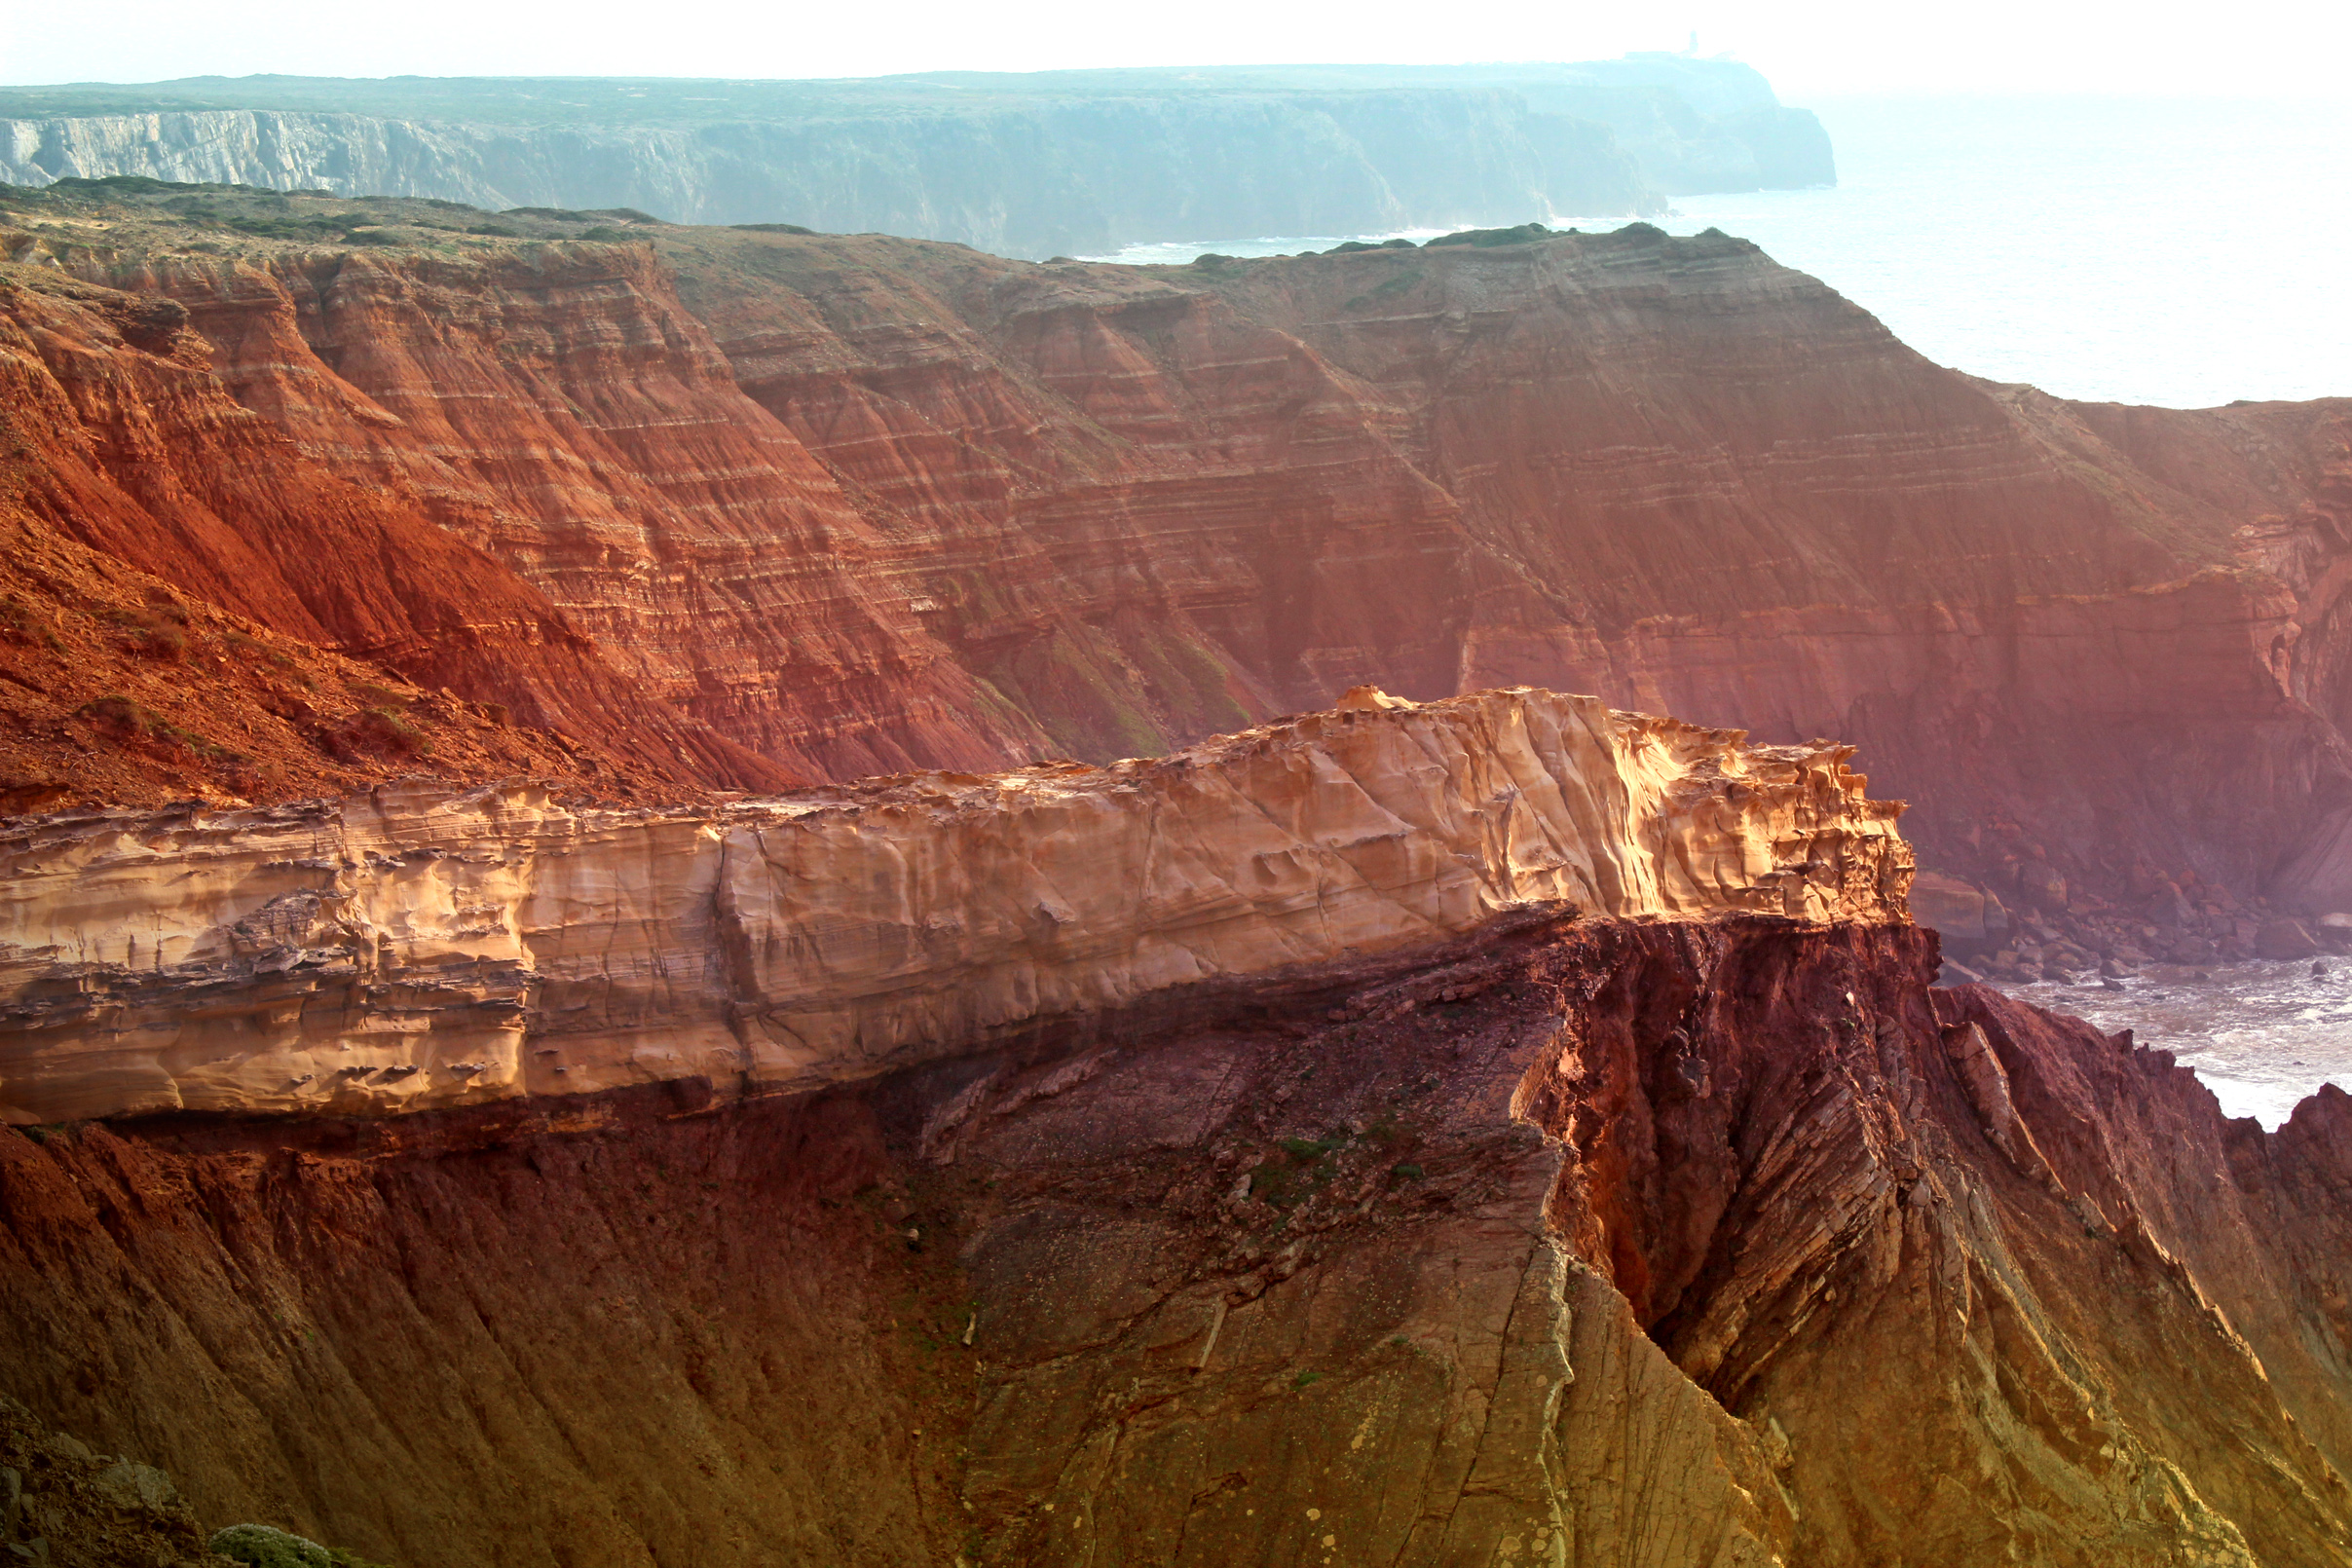 Geology - Rock Layers Forming Coastal Cliffs in the Vicentine Coast of, Algarve, Seascape, Red, Rock, HQ Photo